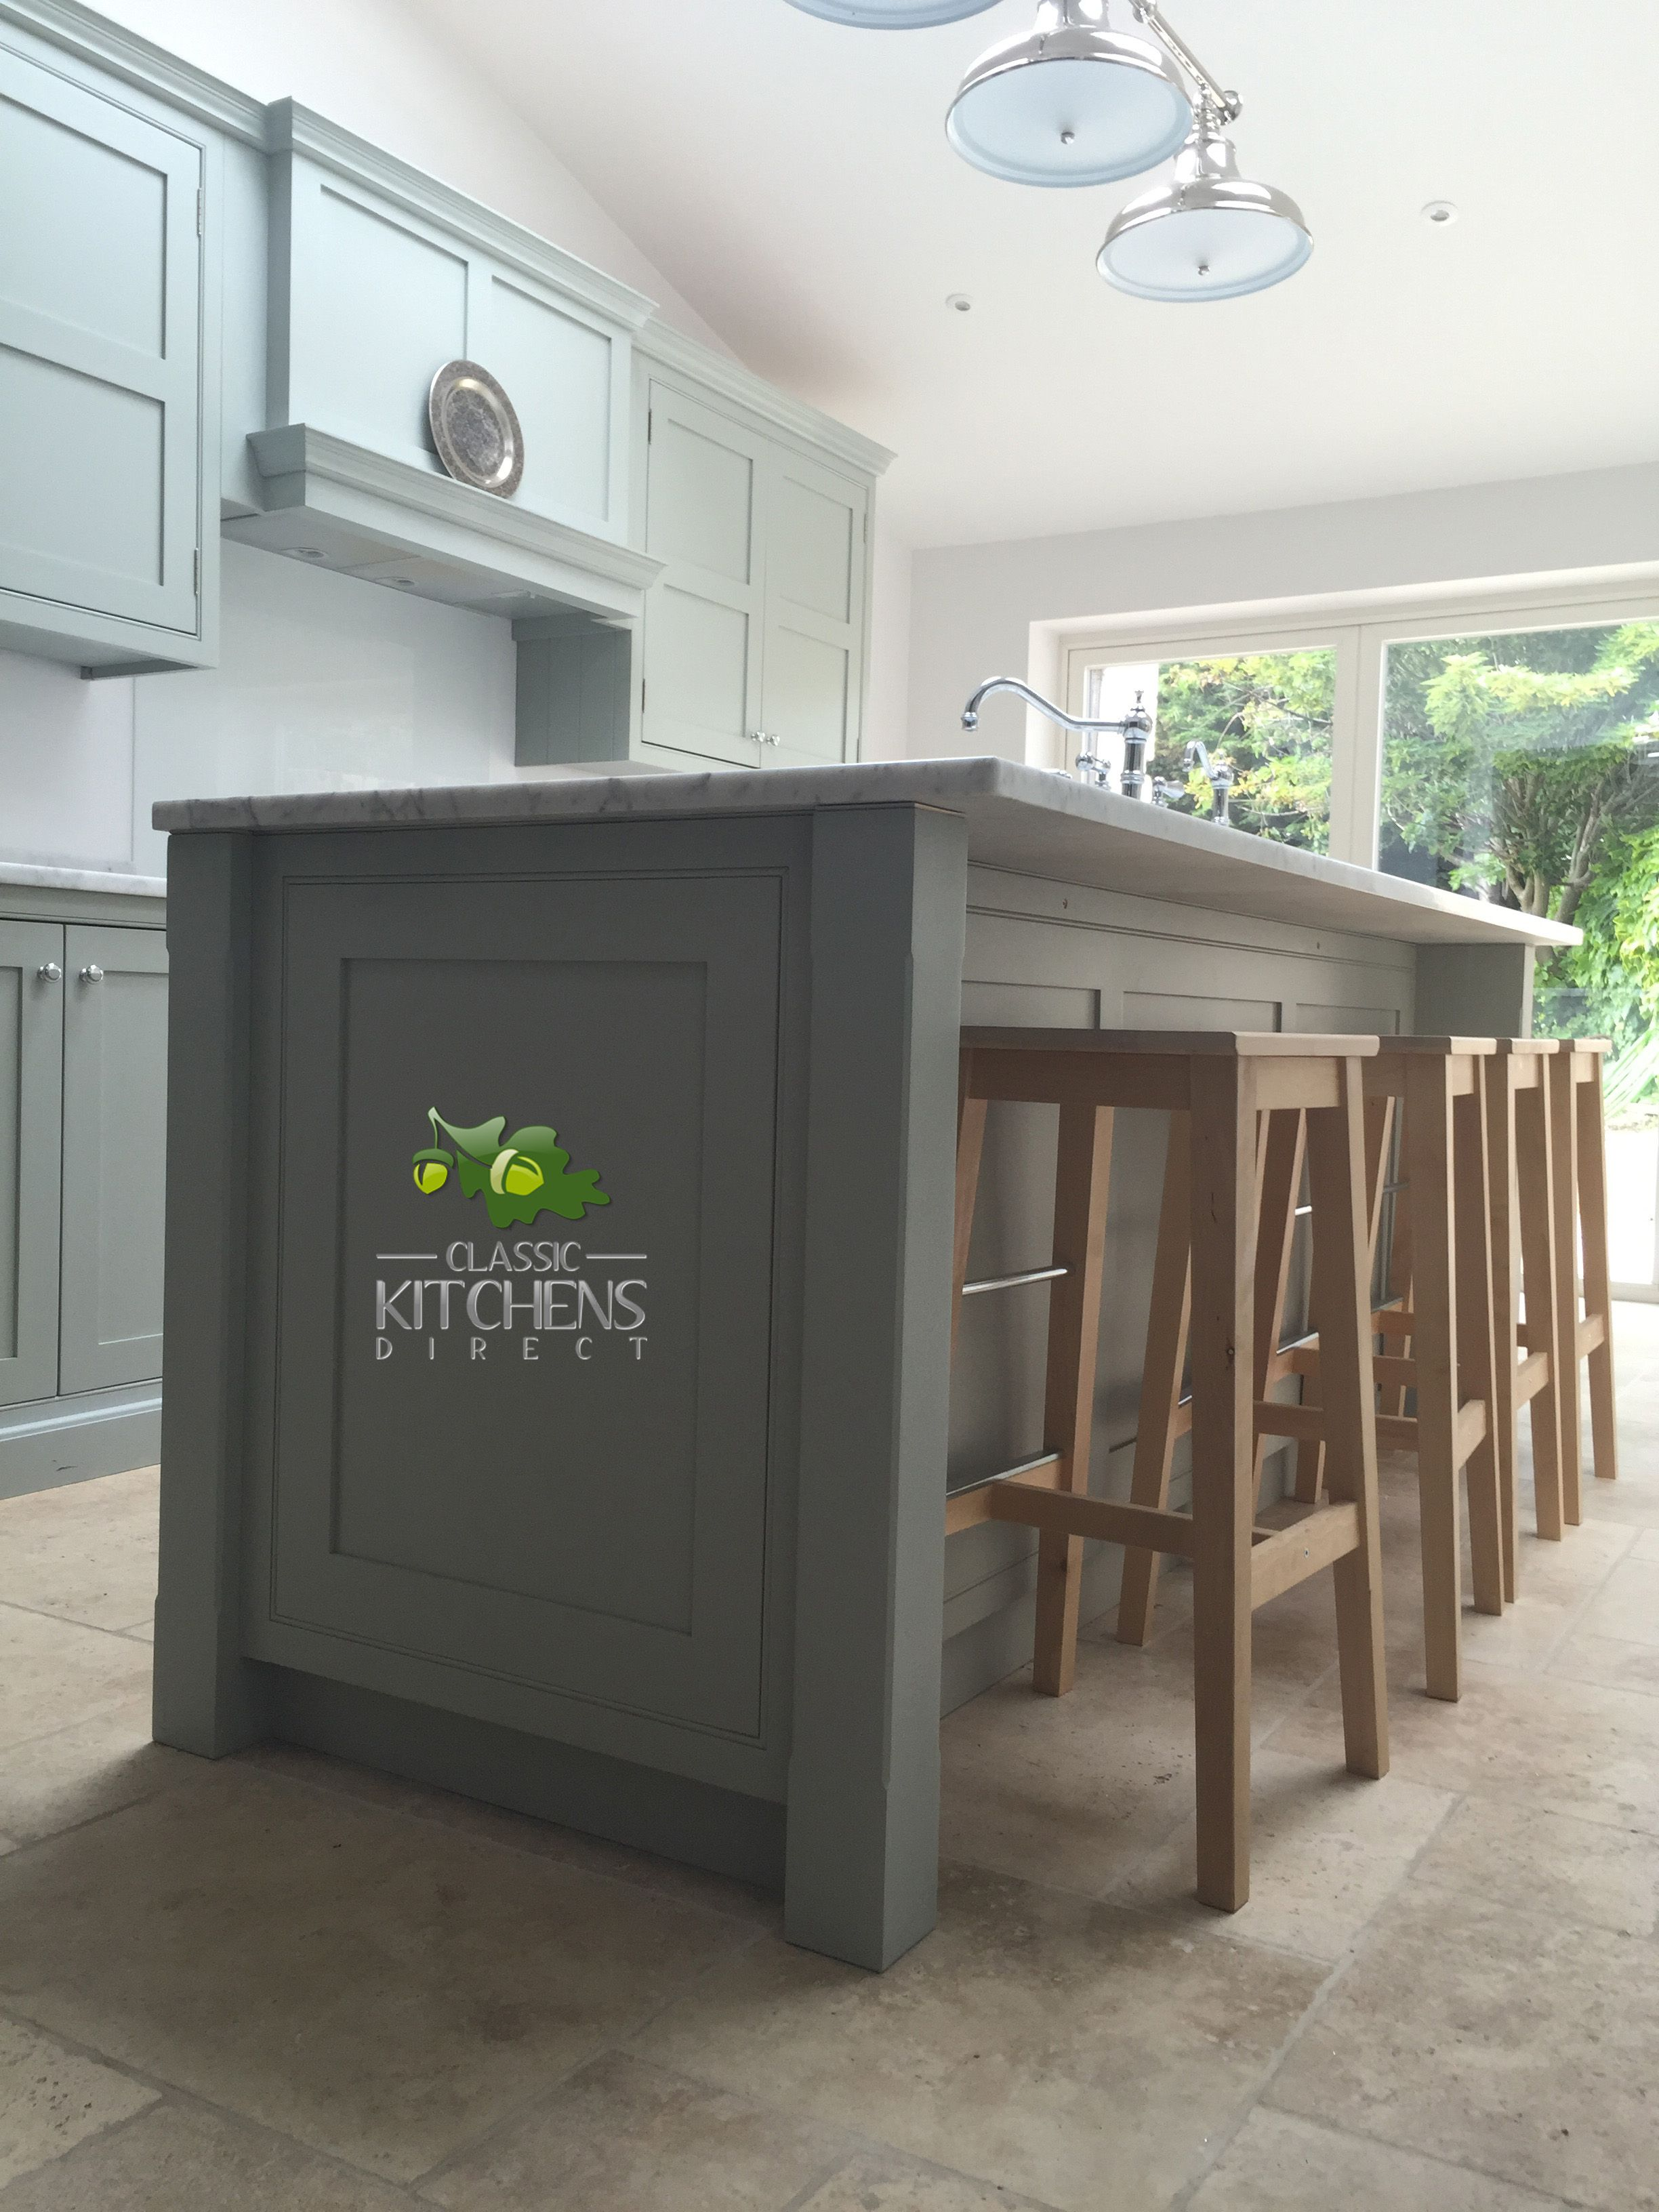 A Lovely Example Of Our Handmade Kitchens